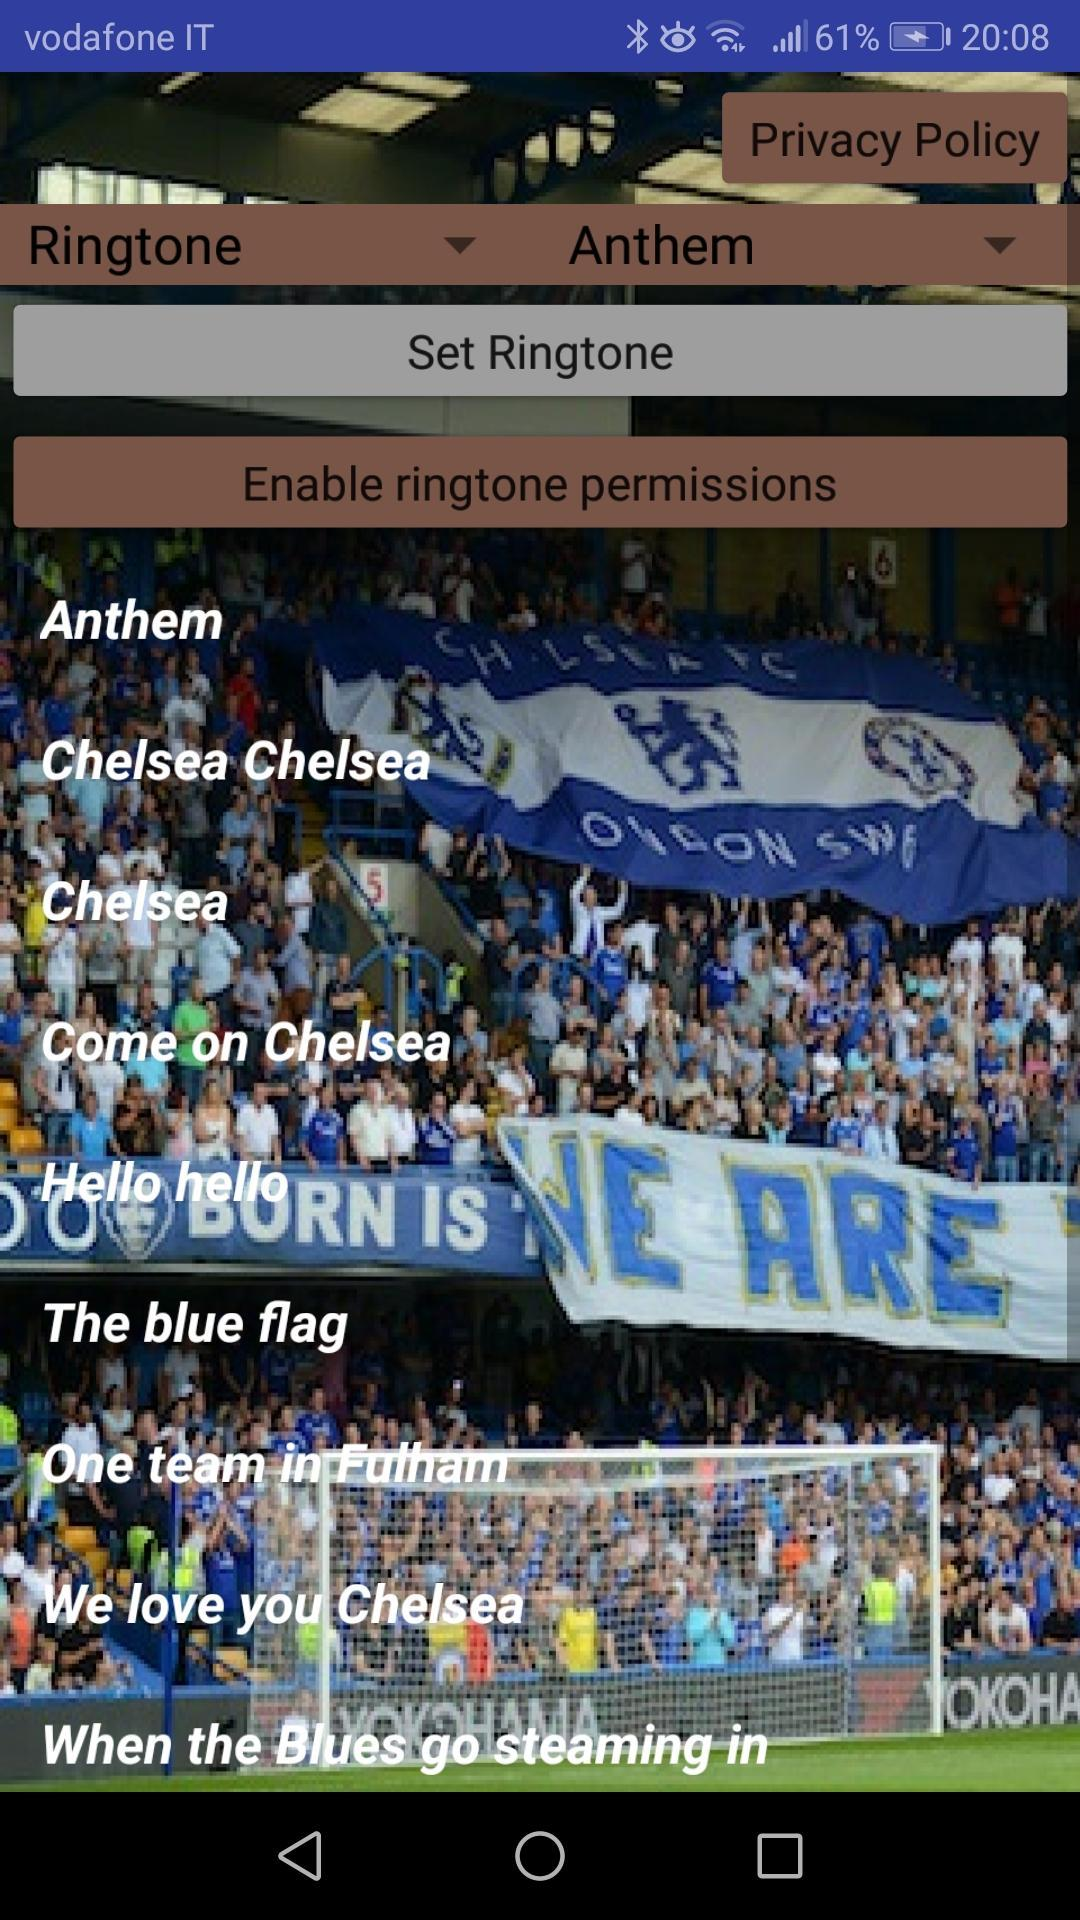 Chorus of Chelsea Fans for Android - APK Download